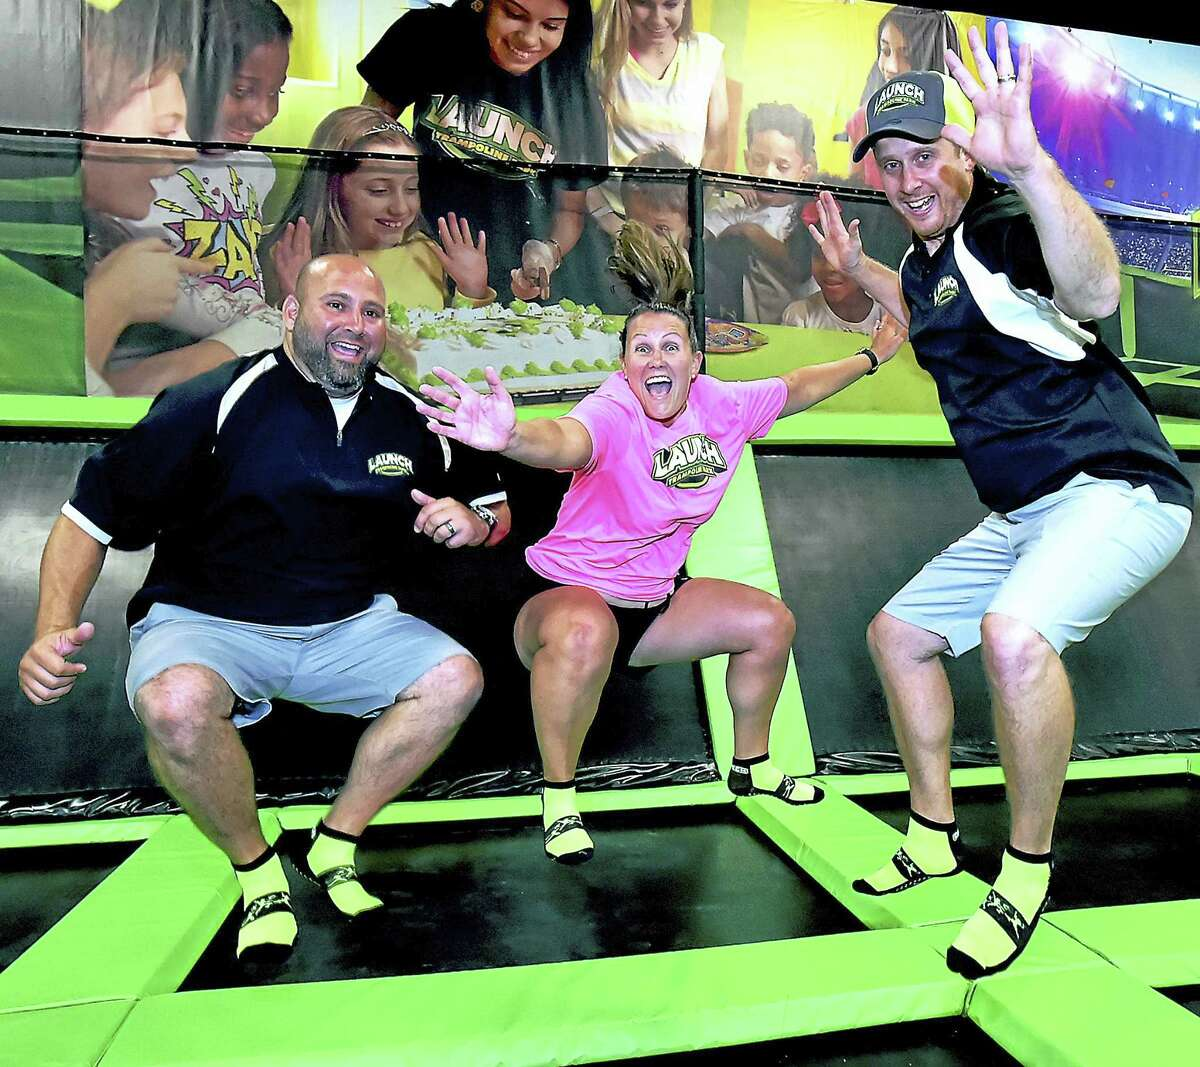 Kristi Carriero and her husband Mike Carriero, of Norwalk, and her brother Brandon Maxwell, of Rhode Island are owners of Launch of Milford, are photographed, Wednesday, July 6, 2016 at their 10,000-square foot trampoline park at 125 Old Gate Lane in Milford opens Saturday, July 9, 2016.